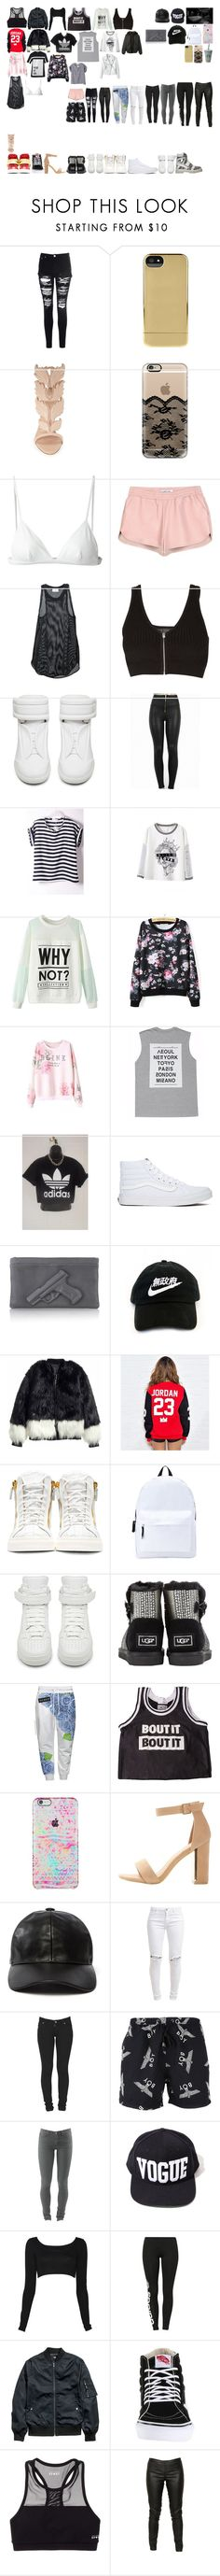 """Packing for Roommates"" by kaelighoffical ❤ liked on Polyvore featuring Glamorous, Incase, Giuseppe Zanotti, Casetify, T By Alexander Wang, Elizabeth and James, Forte Forte, rag & bone, Maison Margiela and Hood by Air"